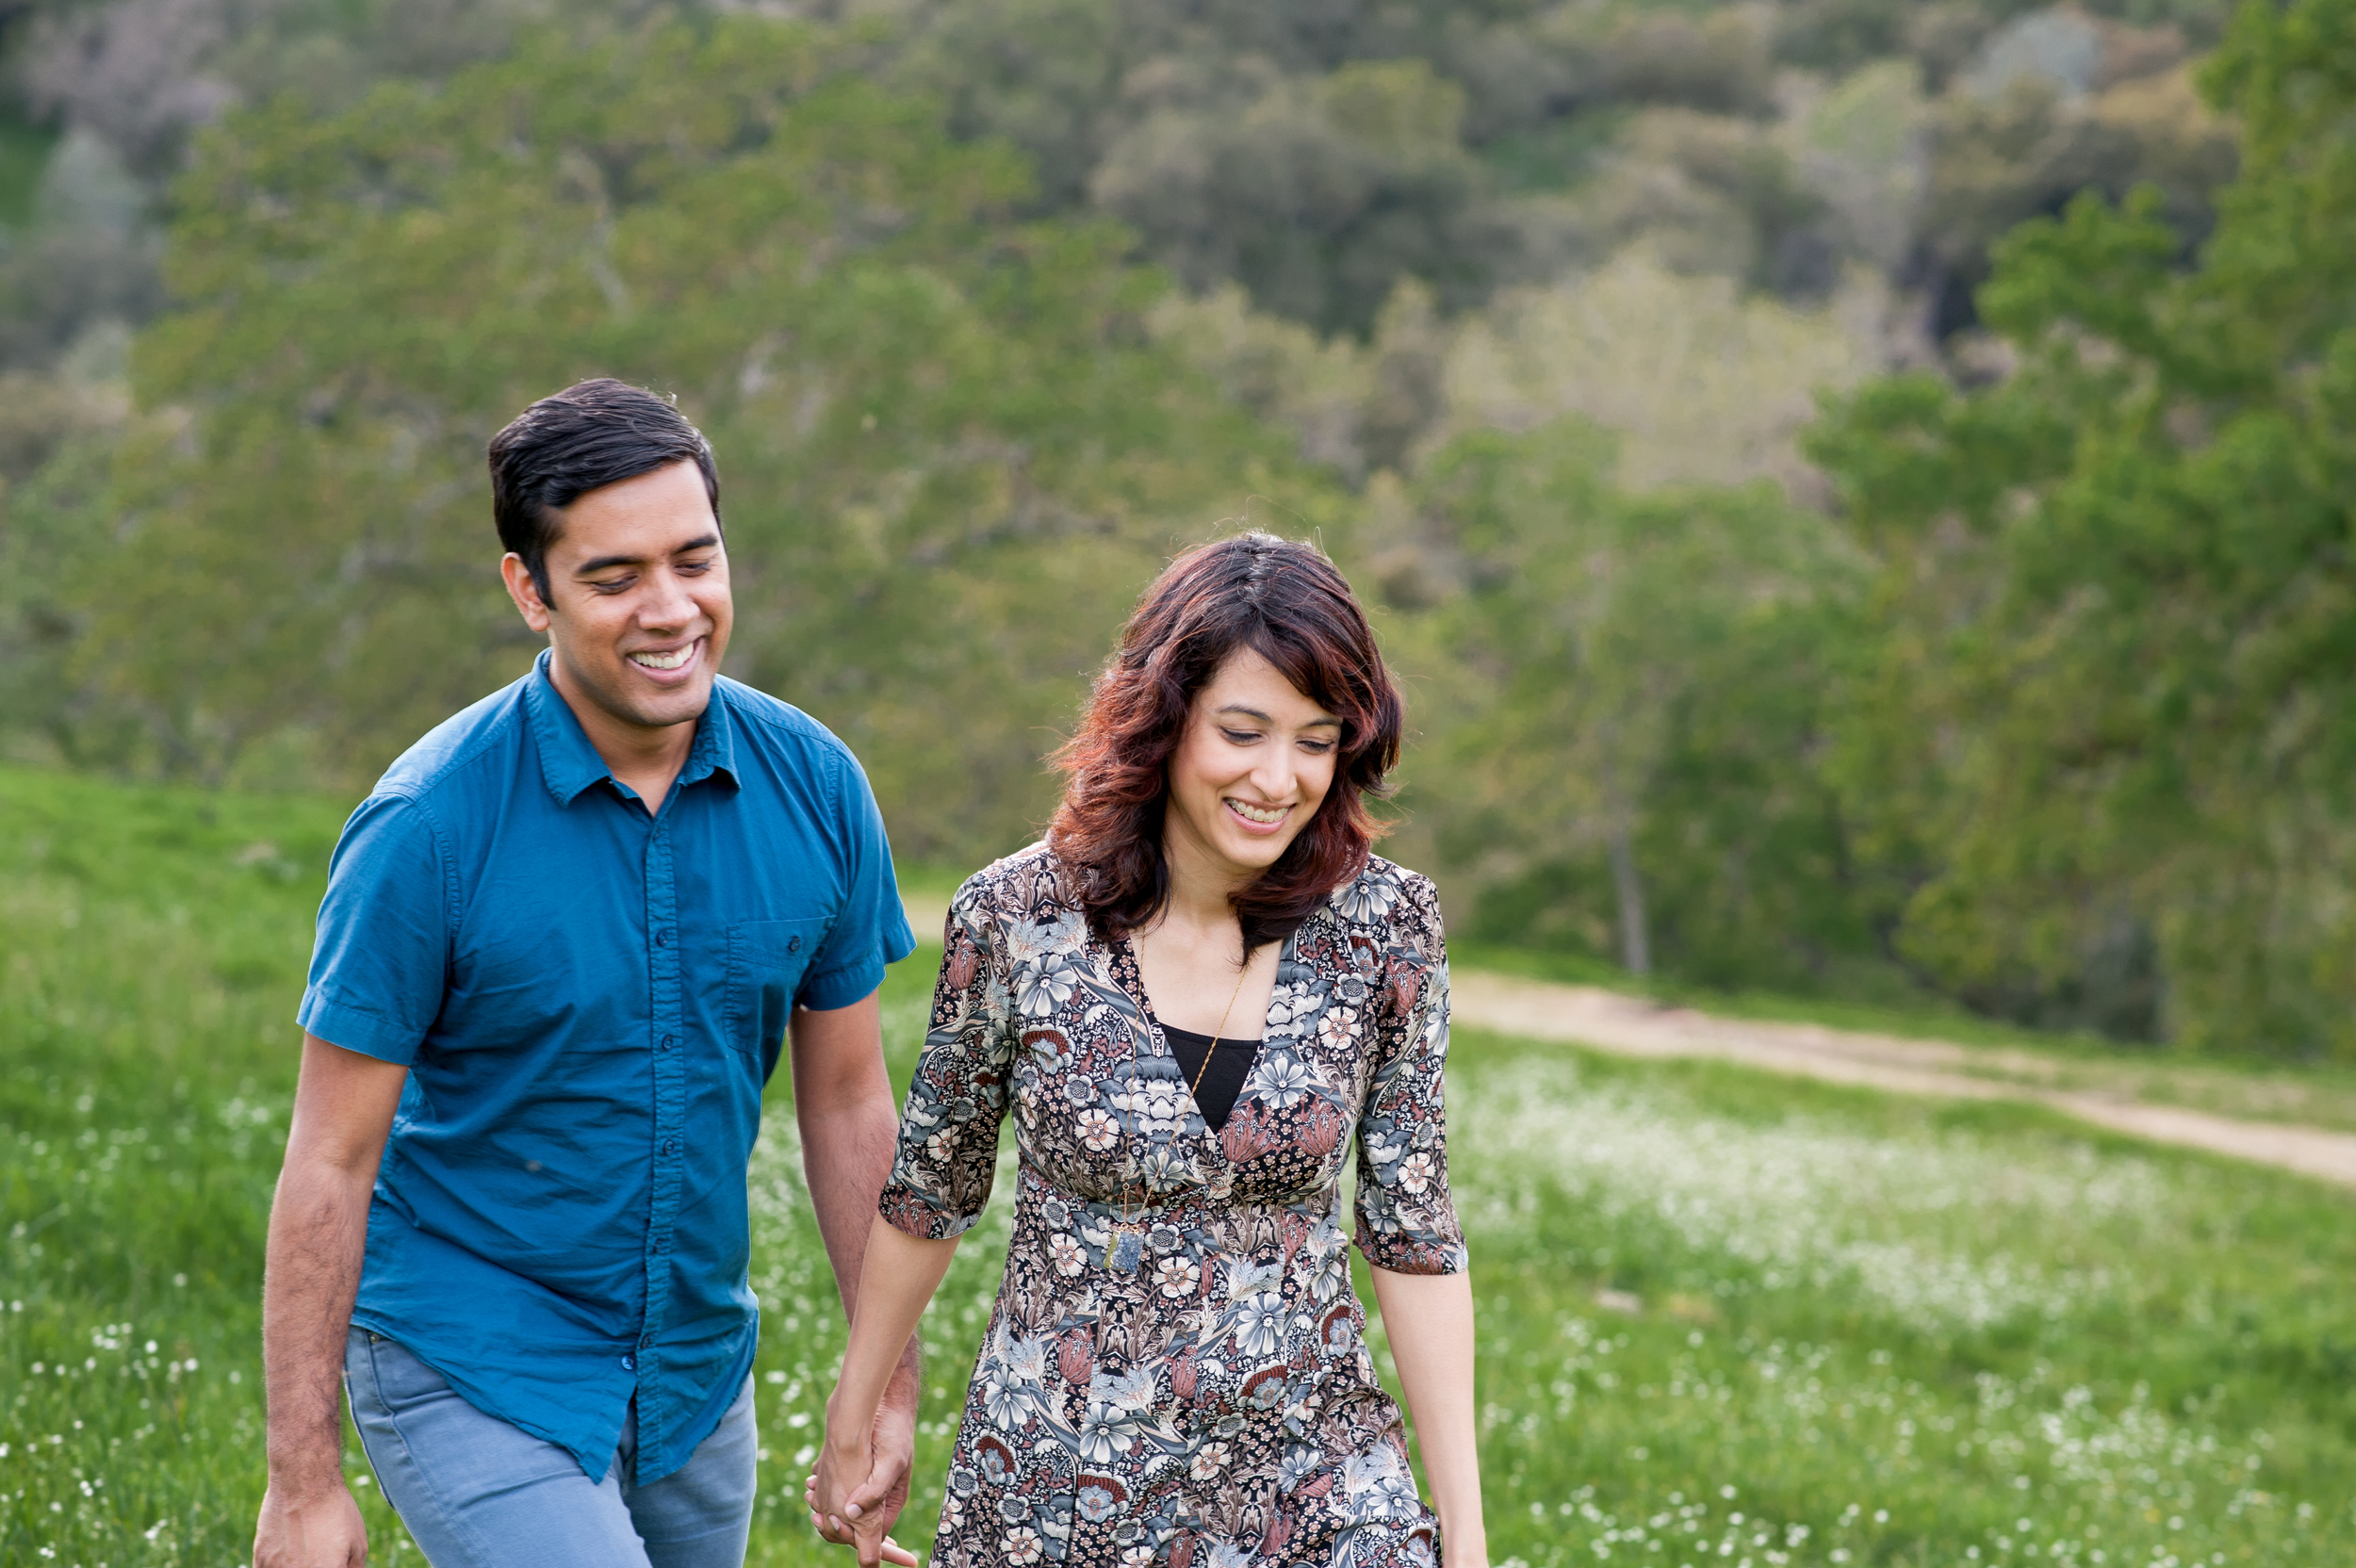 08-sunol-regional-wilderness-springtime-engagement-session.jpg